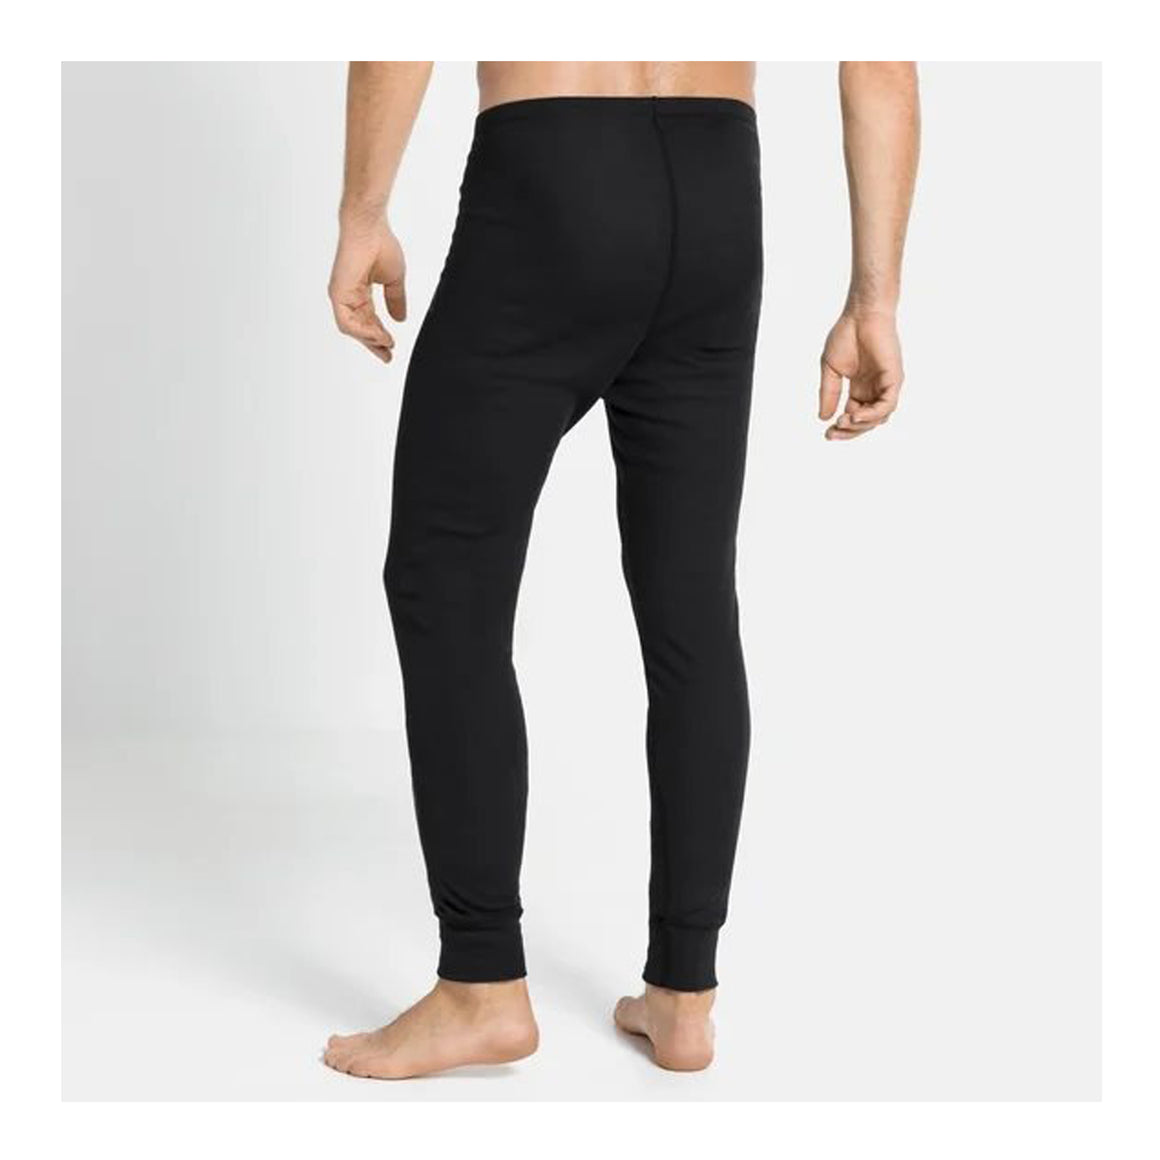 Active Warm Eco Long Bottoms for Men in Black